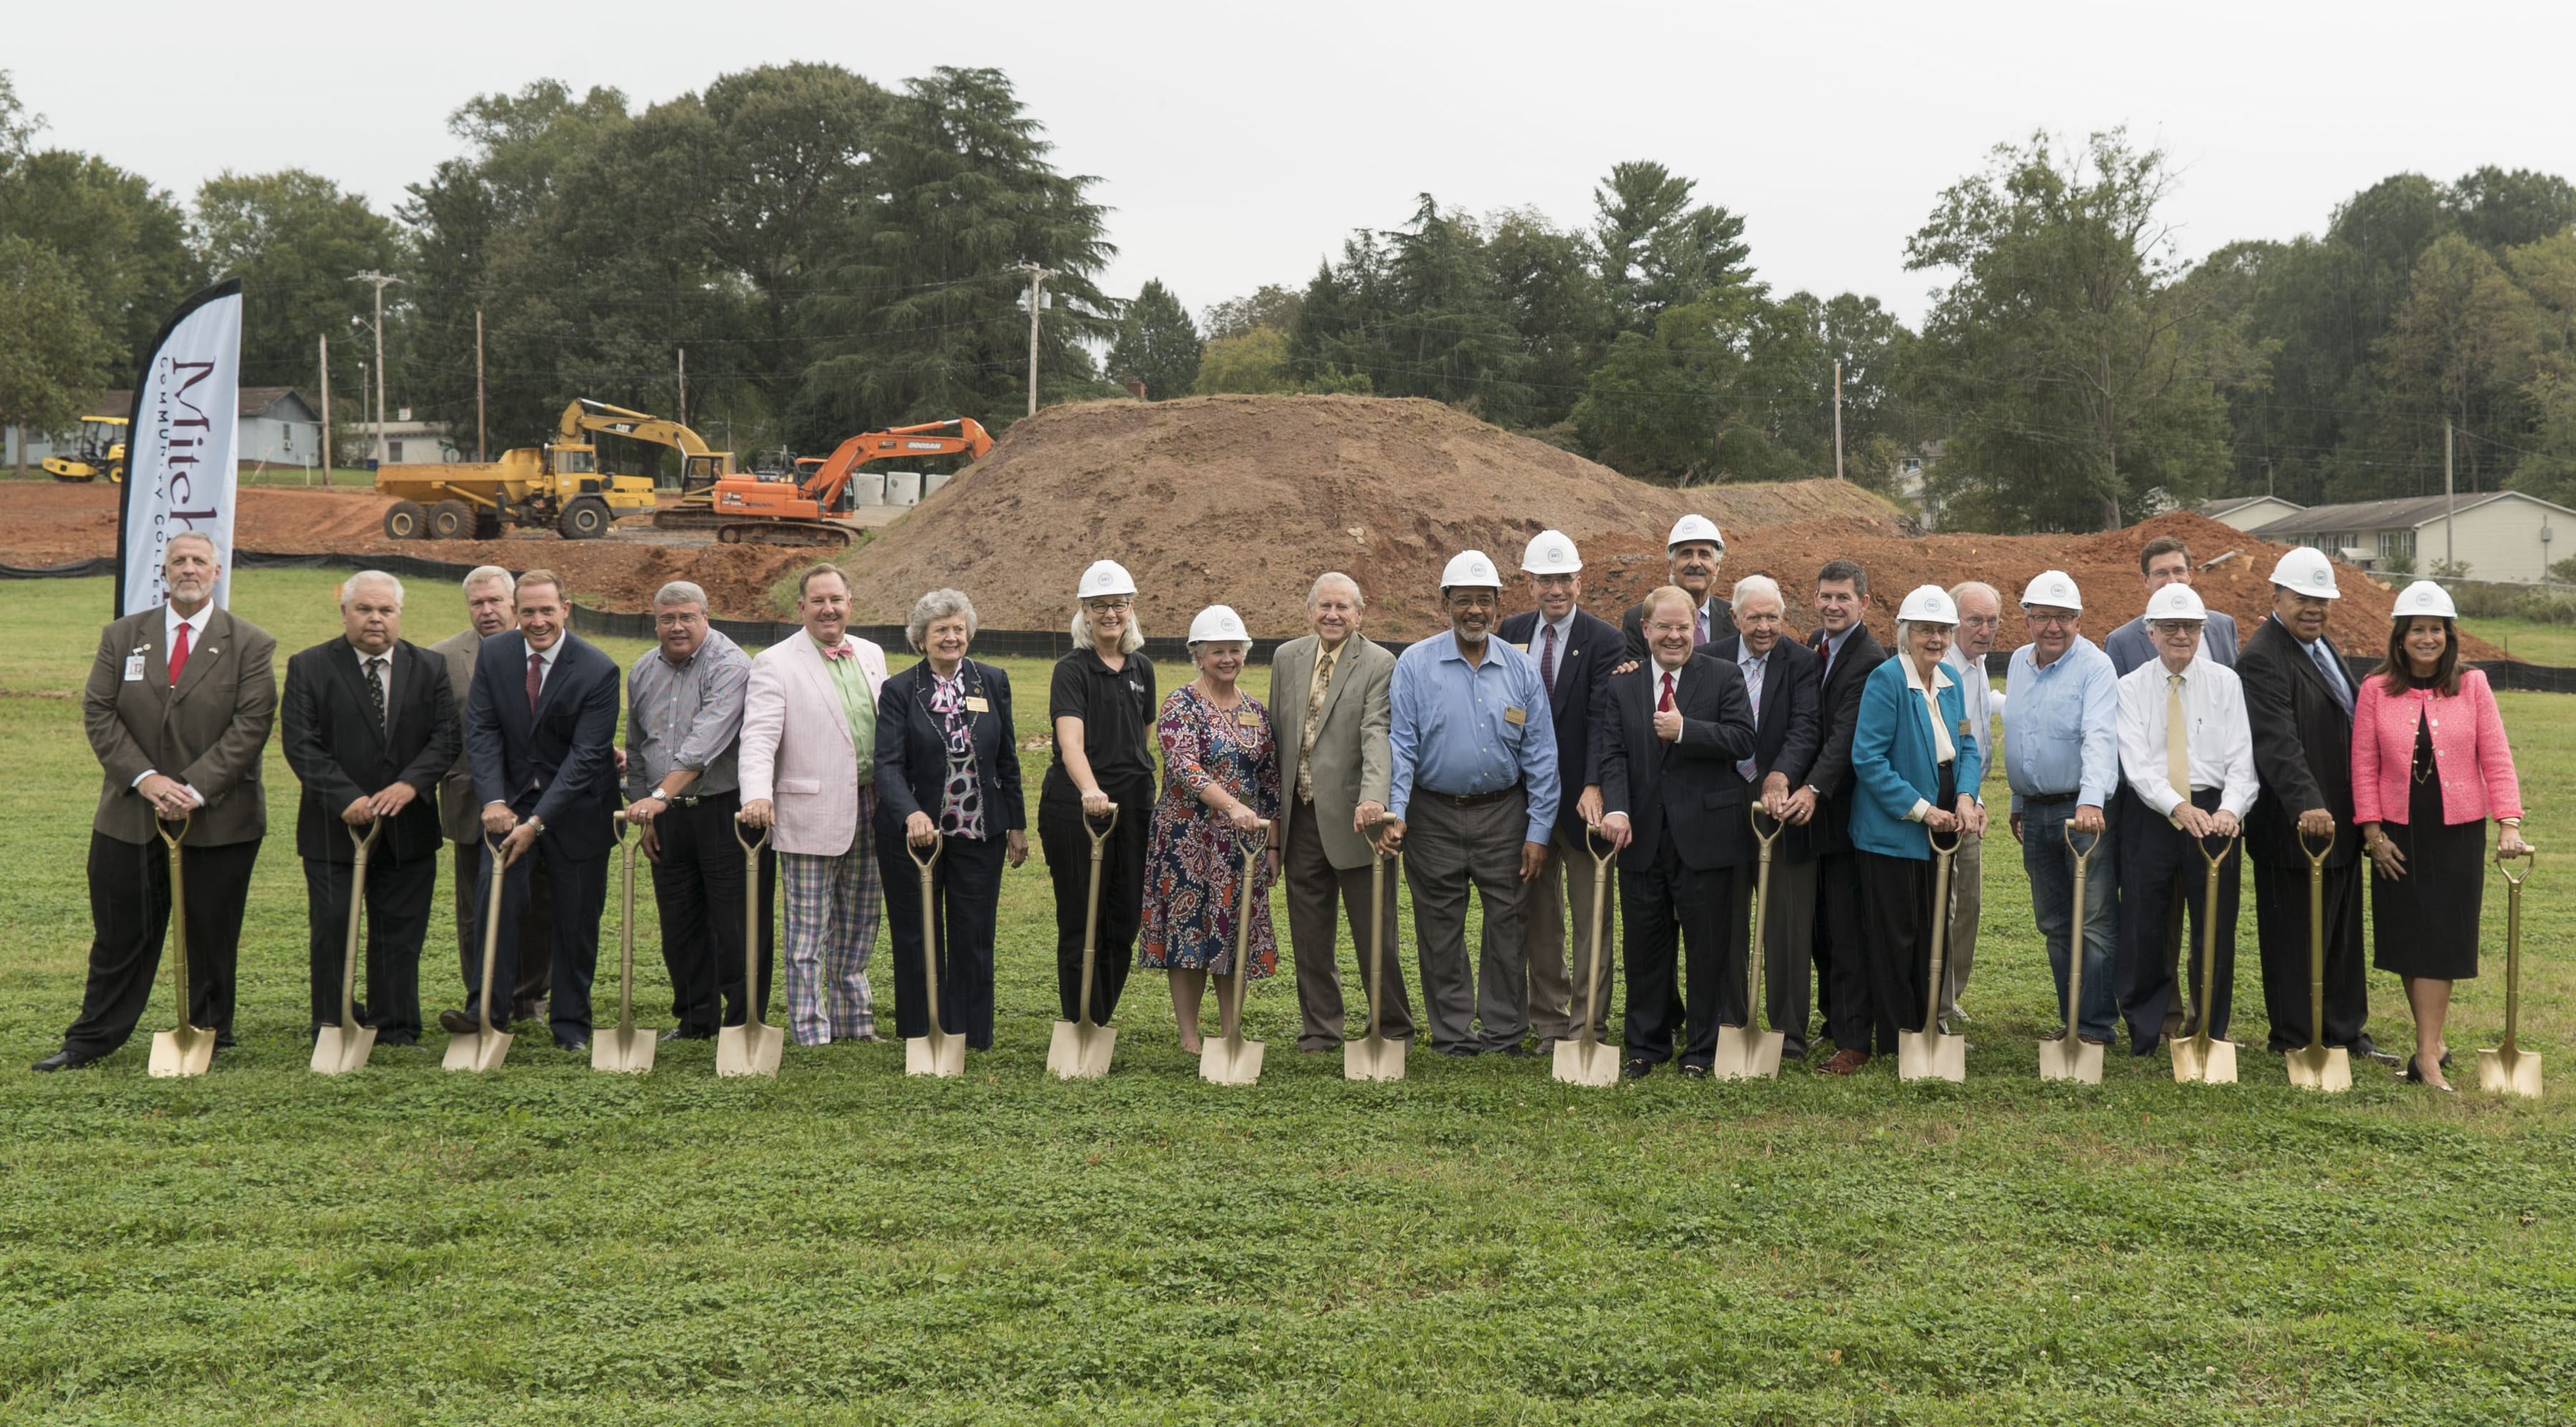 Mitchell Community College administration, employees, dignitaries and friends of the college celebrated the groundbreaking for Mitchell's new Health Sciences Building on Tuesday, October 16.